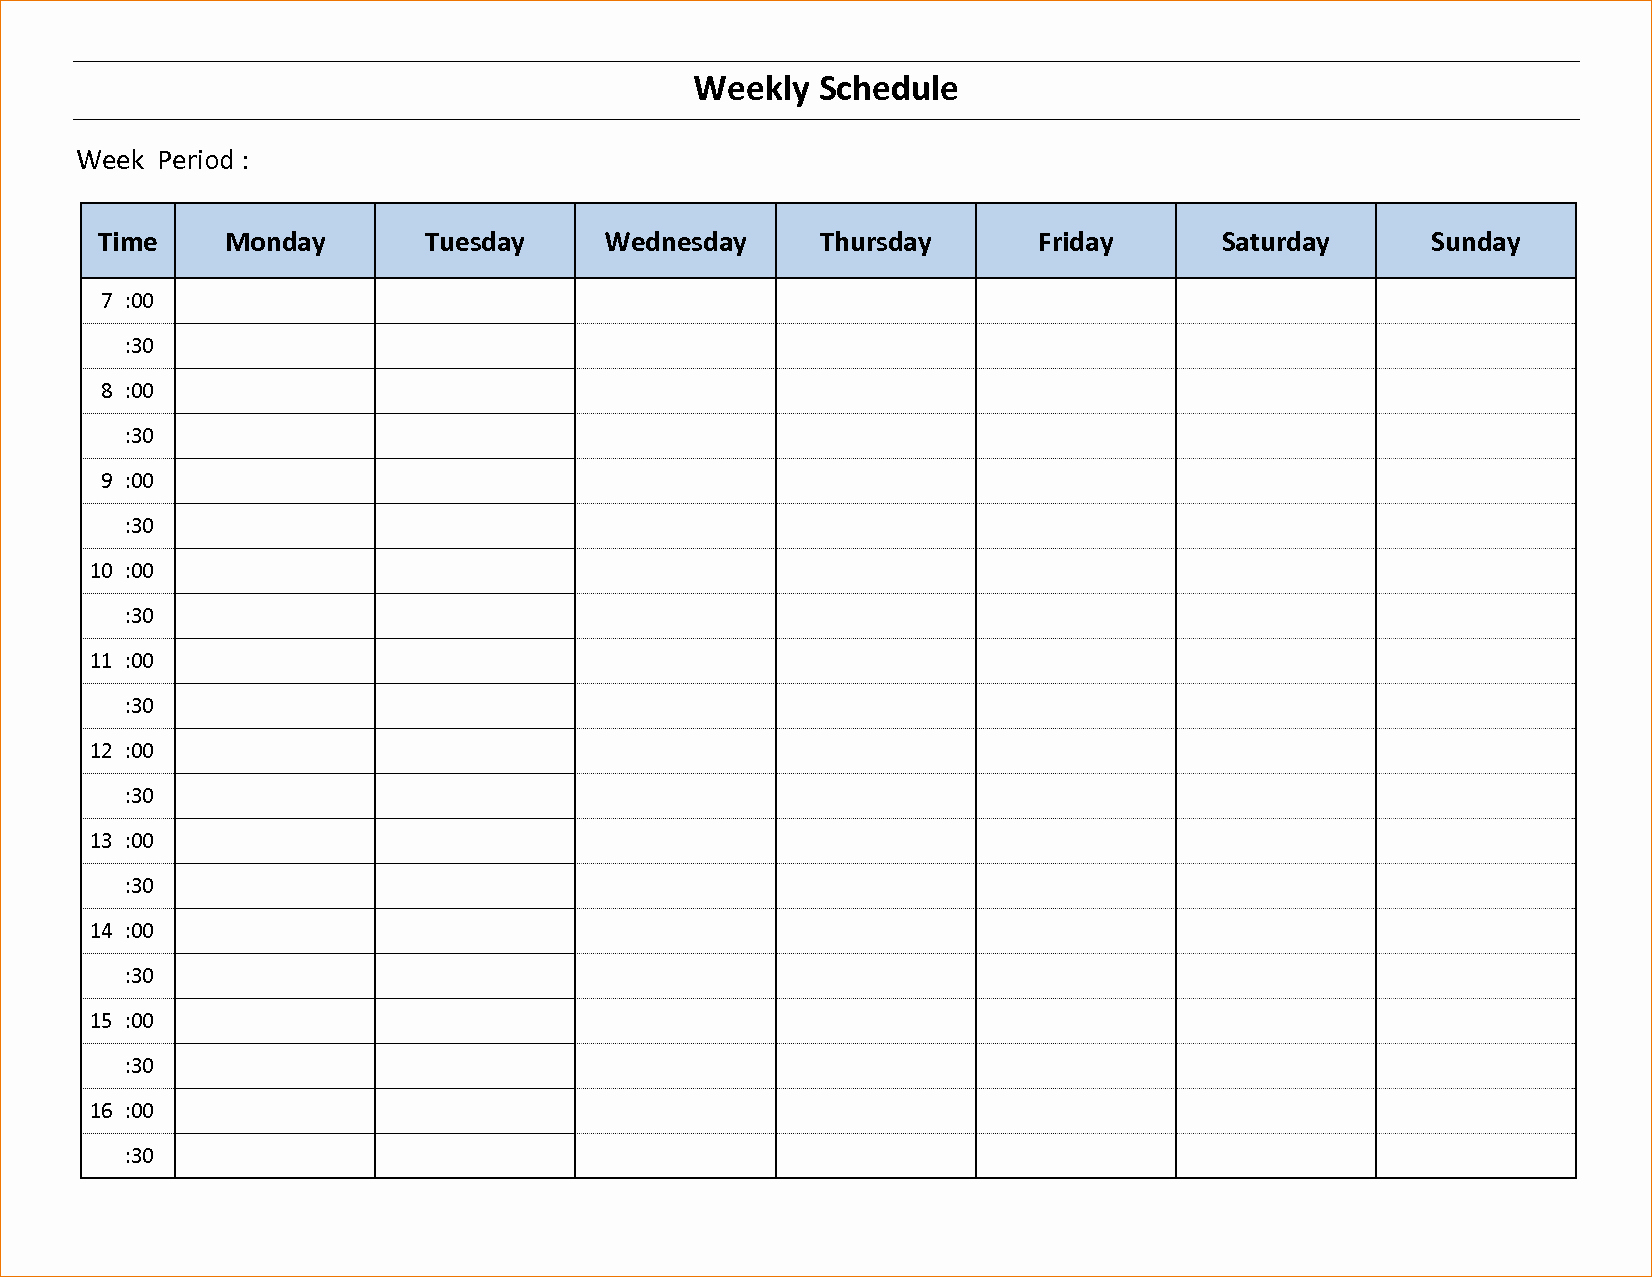 Work Week Schedule Template New Calendar by Week Template Driverlayer Search Engine